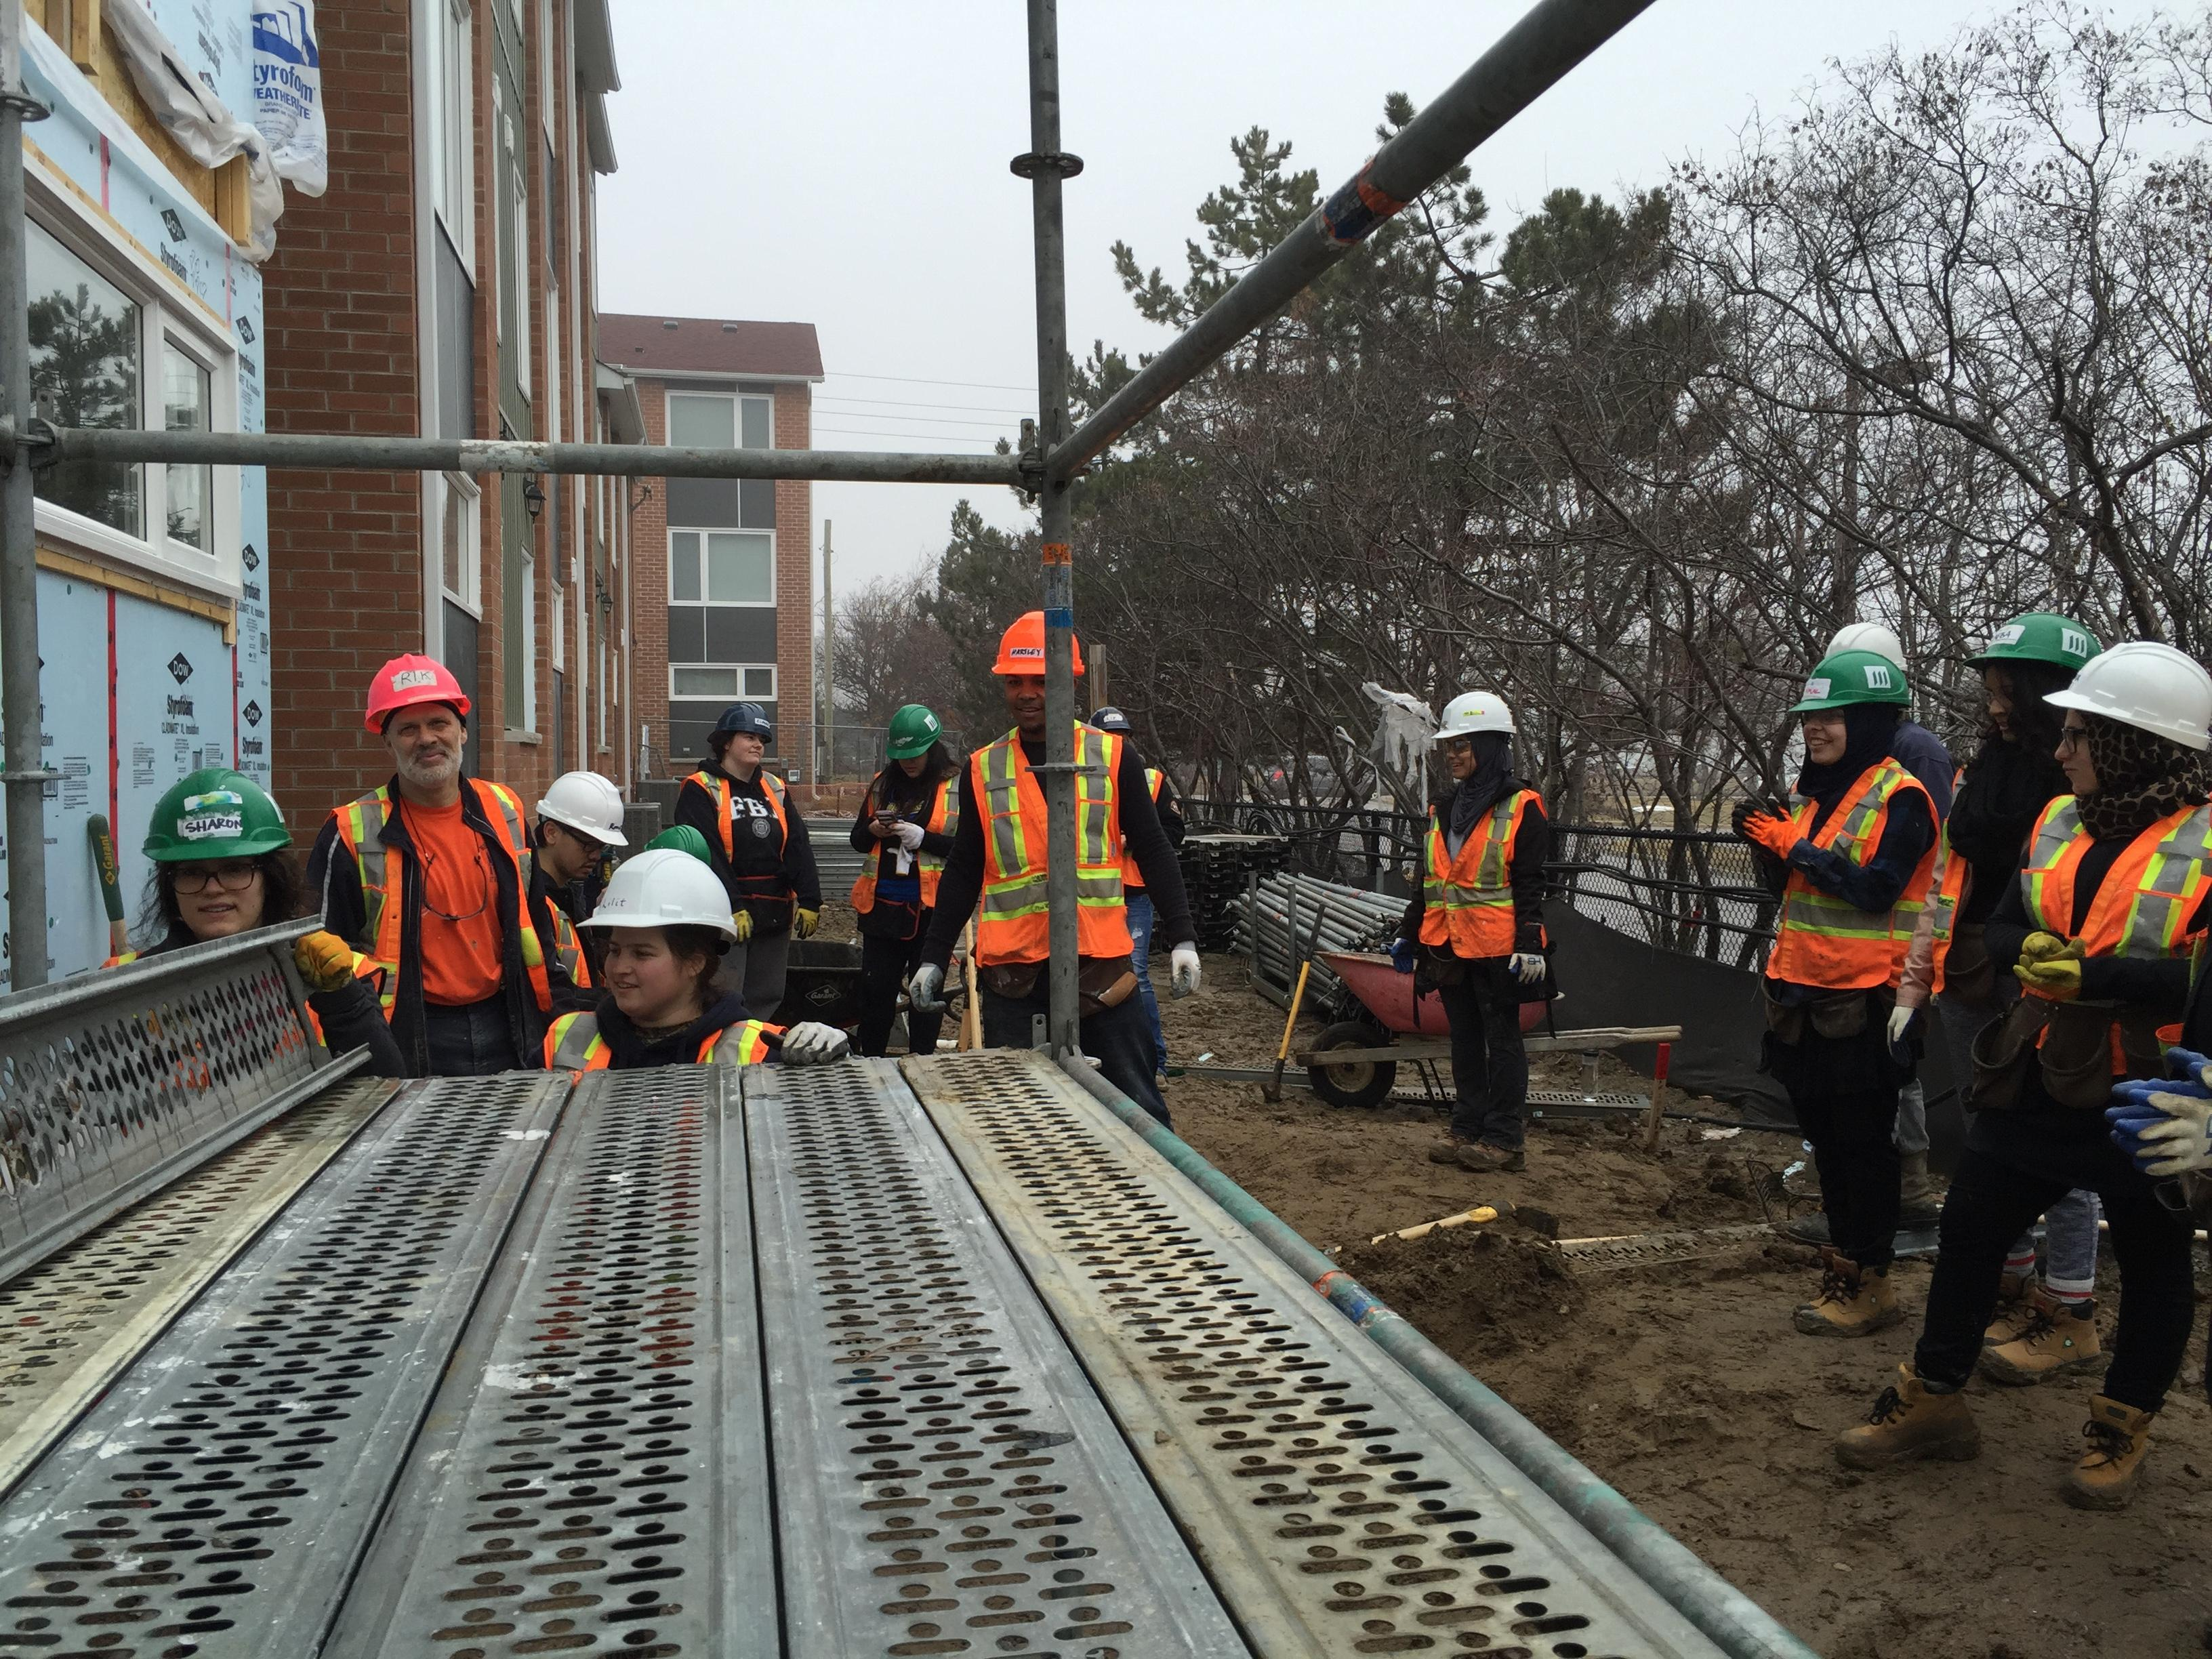 Humber students help at a Habitat for Humanity build in Brampton.